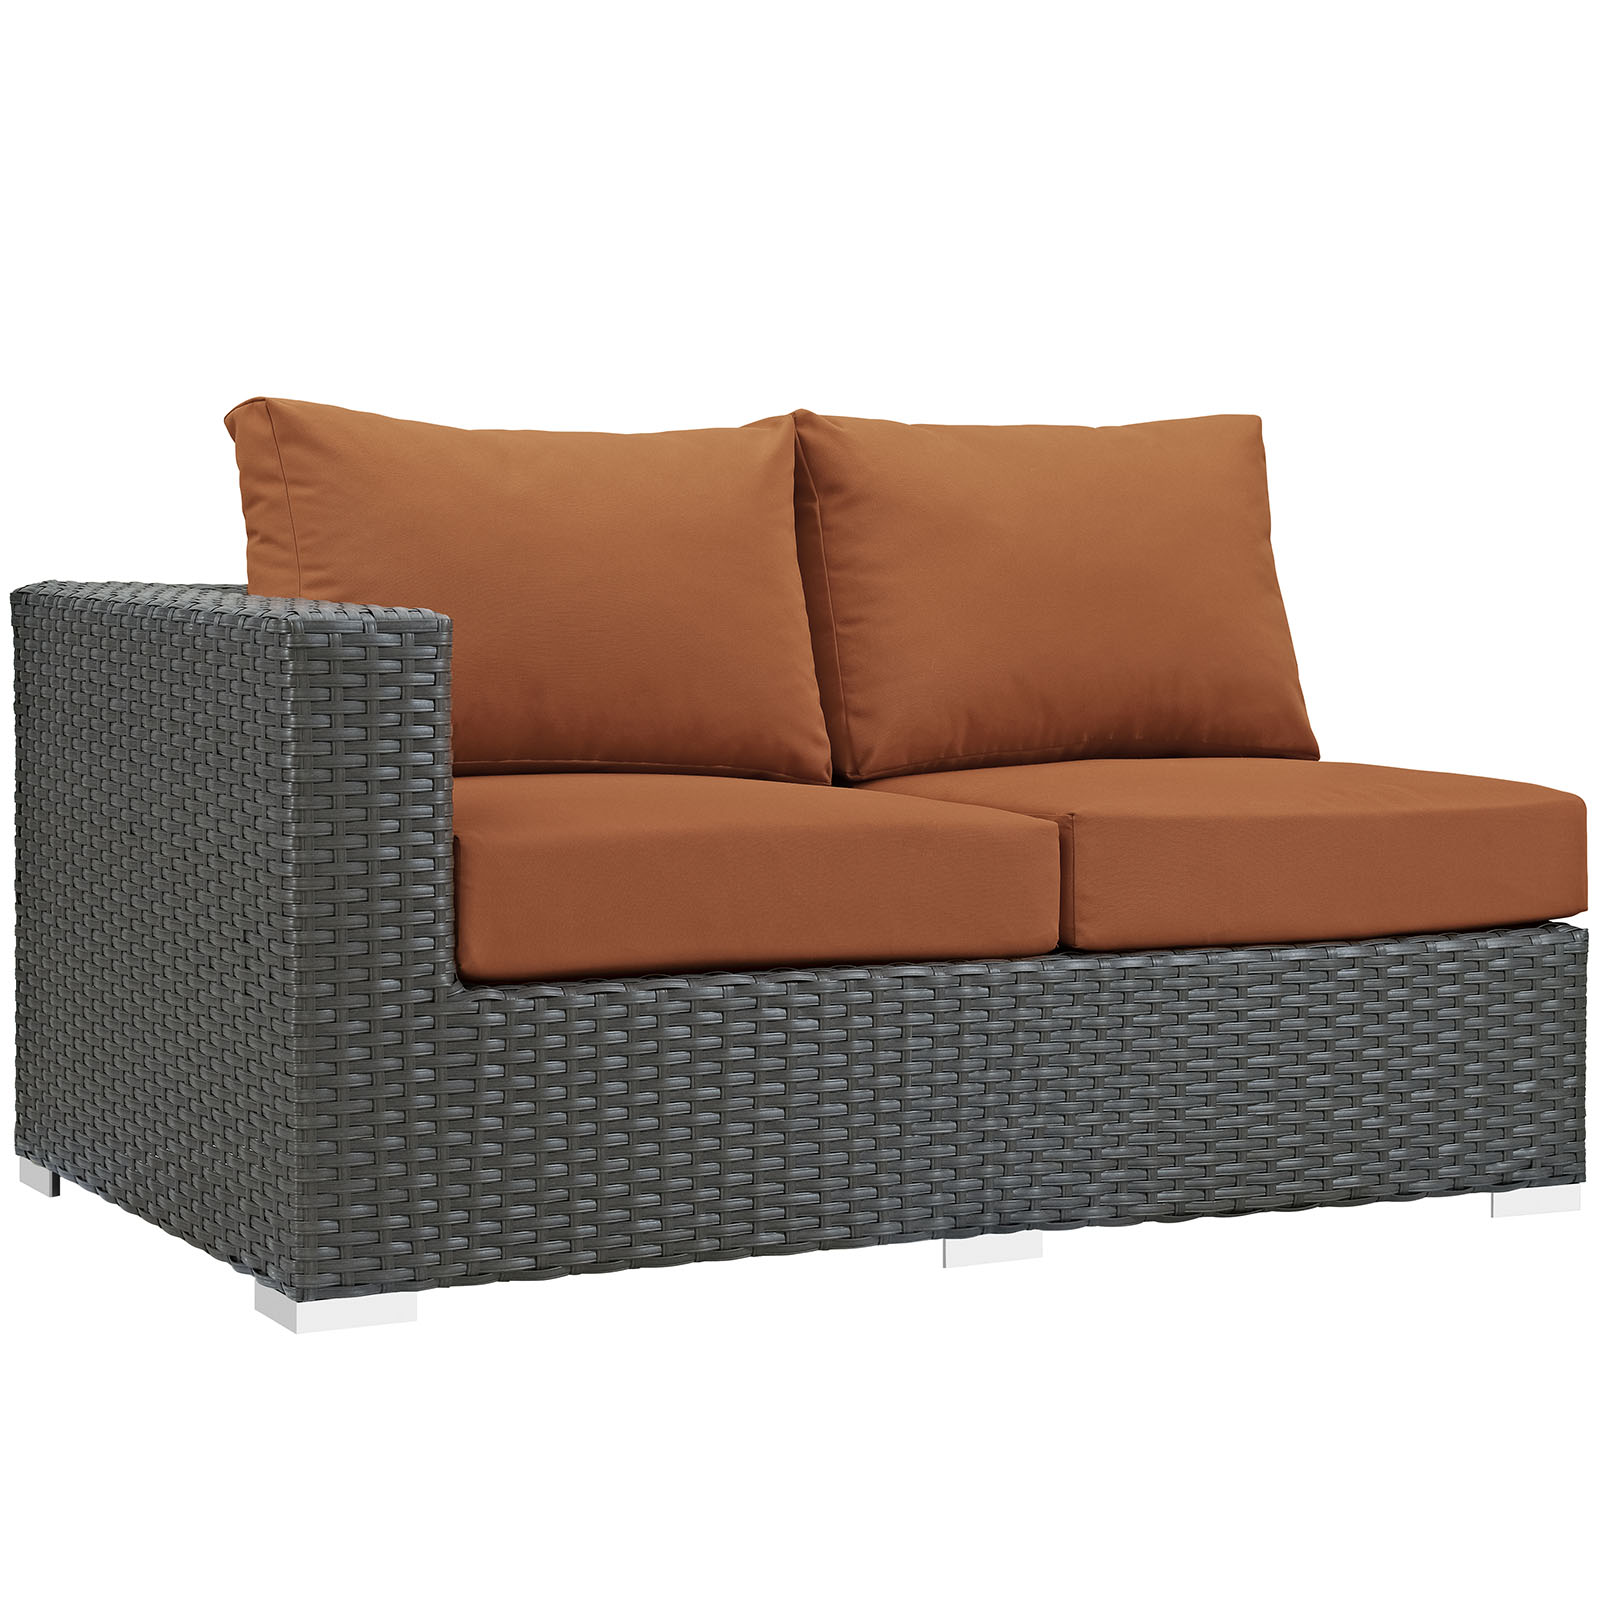 Modern Contemporary Urban Design Outdoor Patio Balcony Left Arm Loveseat Sofa, Orange, Rattan